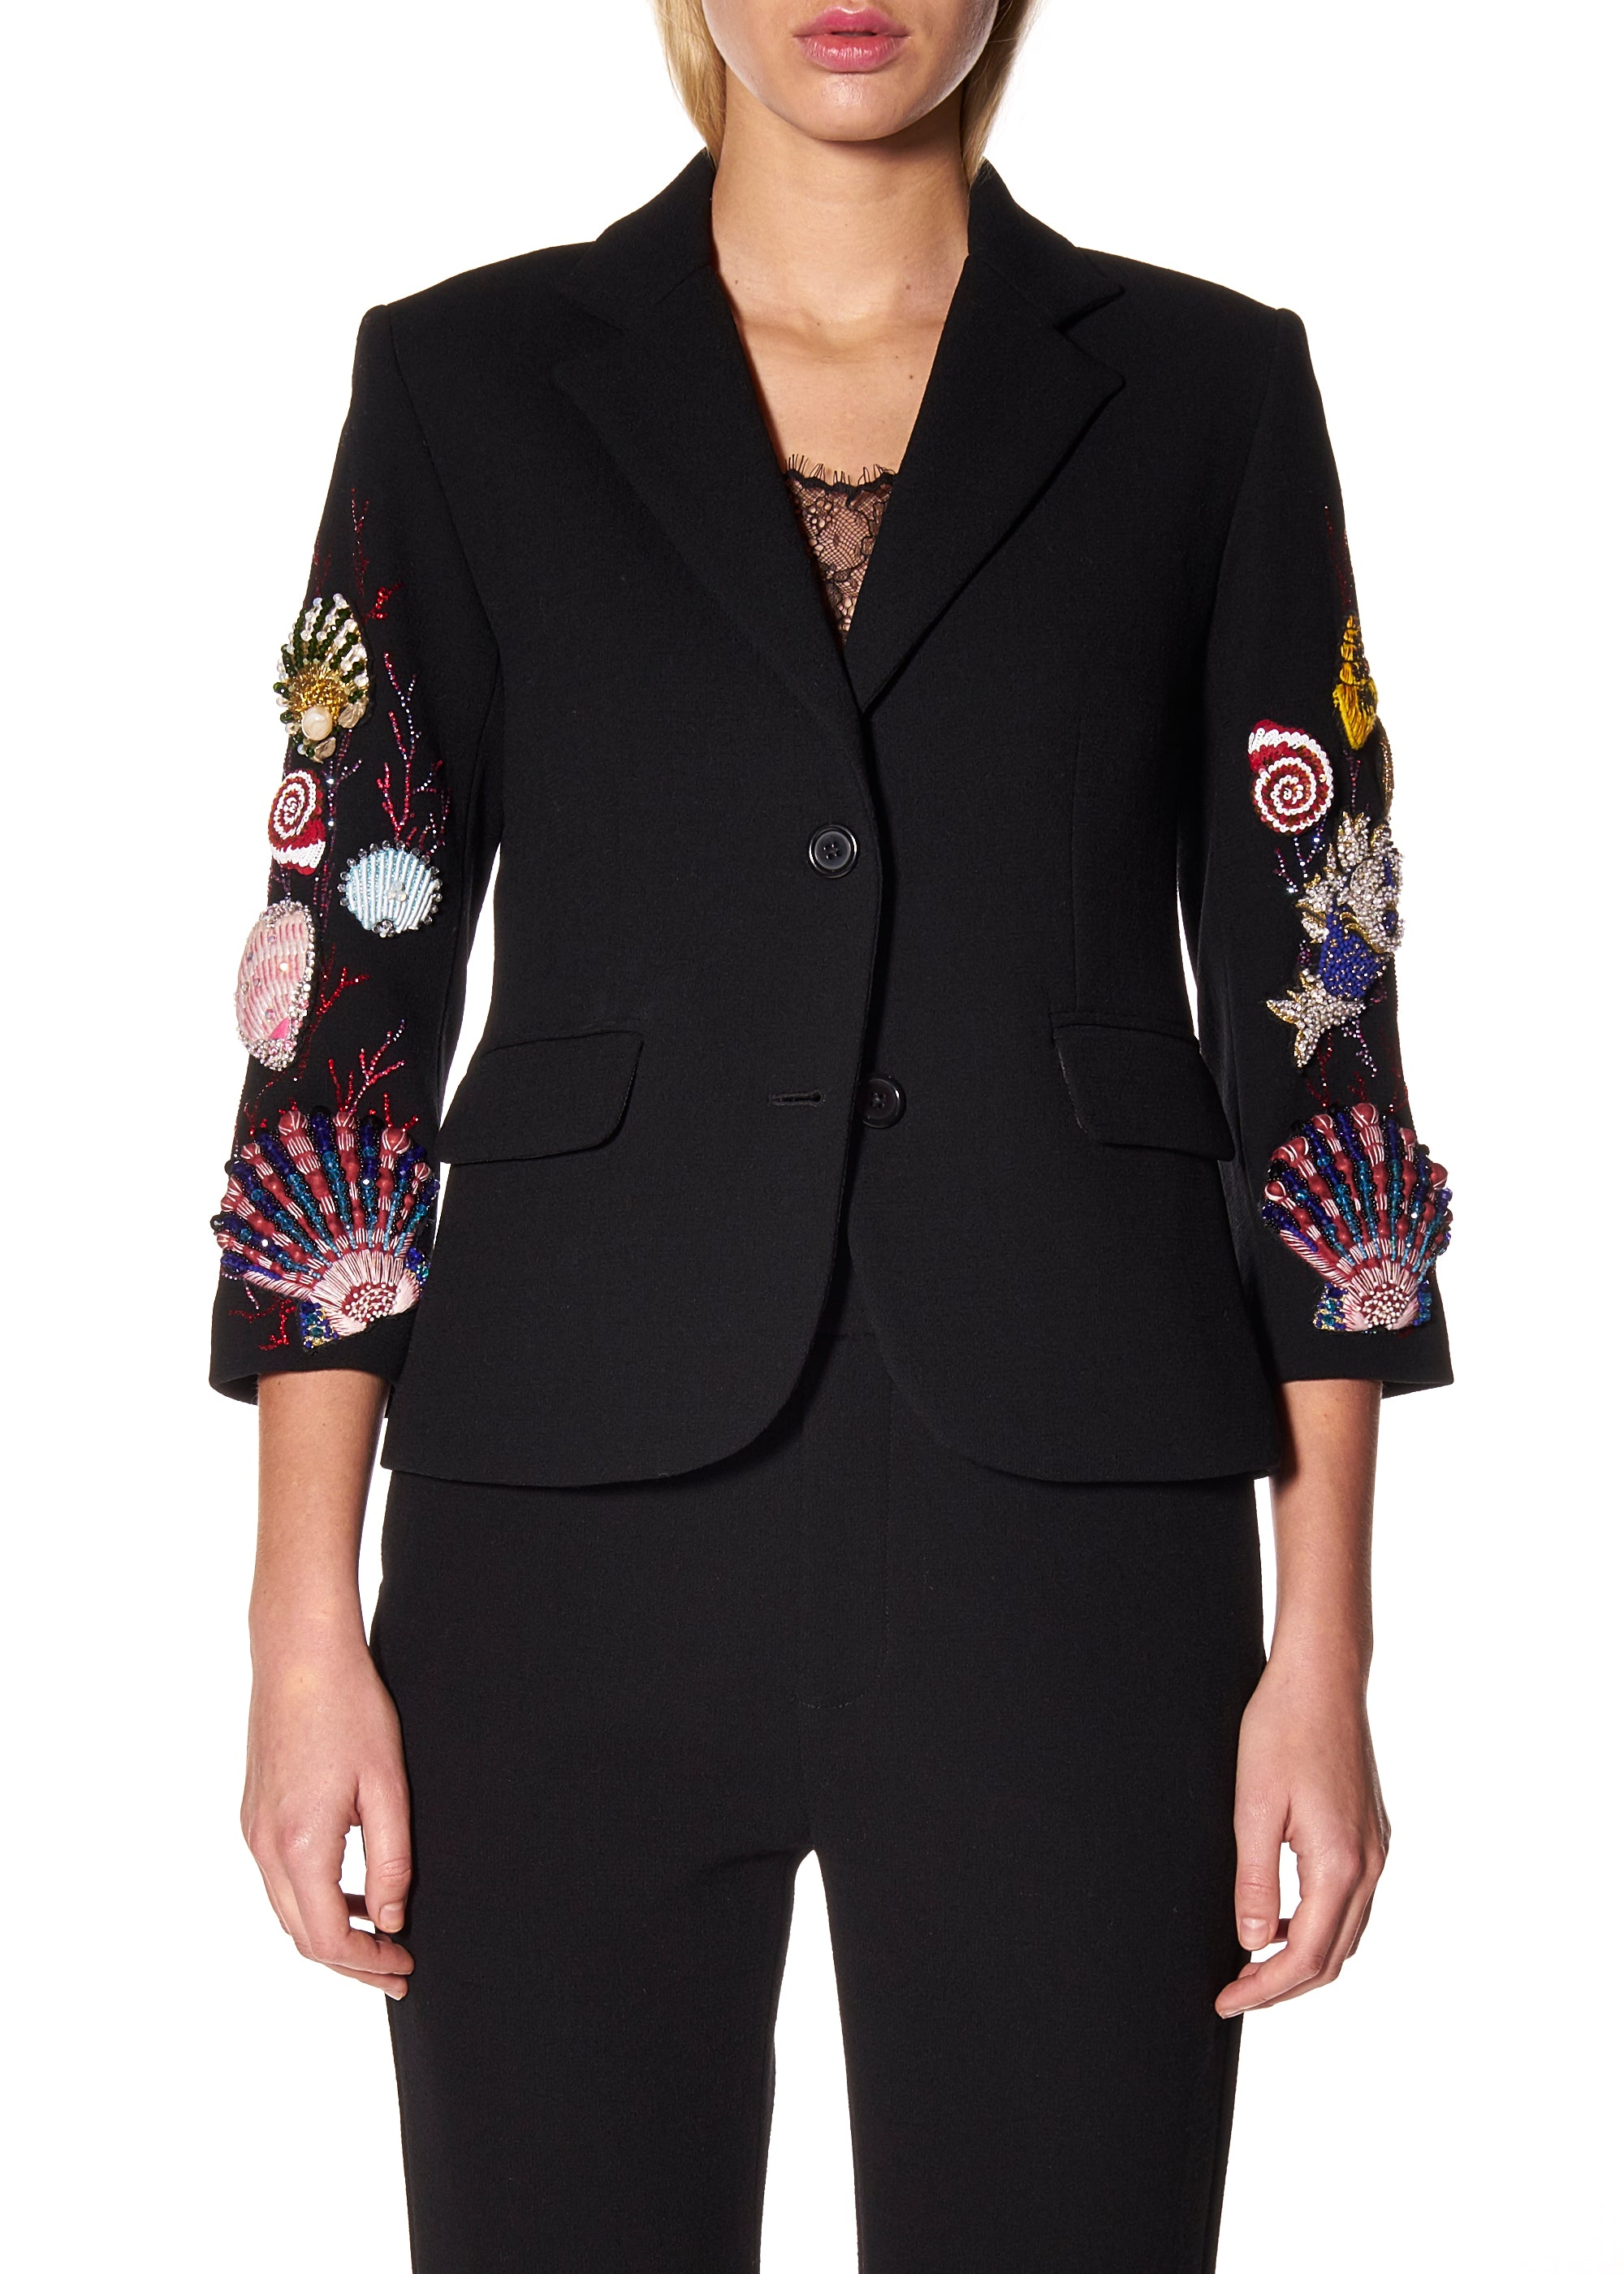 """SEASHELLS"" BLAZER - Women's Jackets & Coats - Libertine"